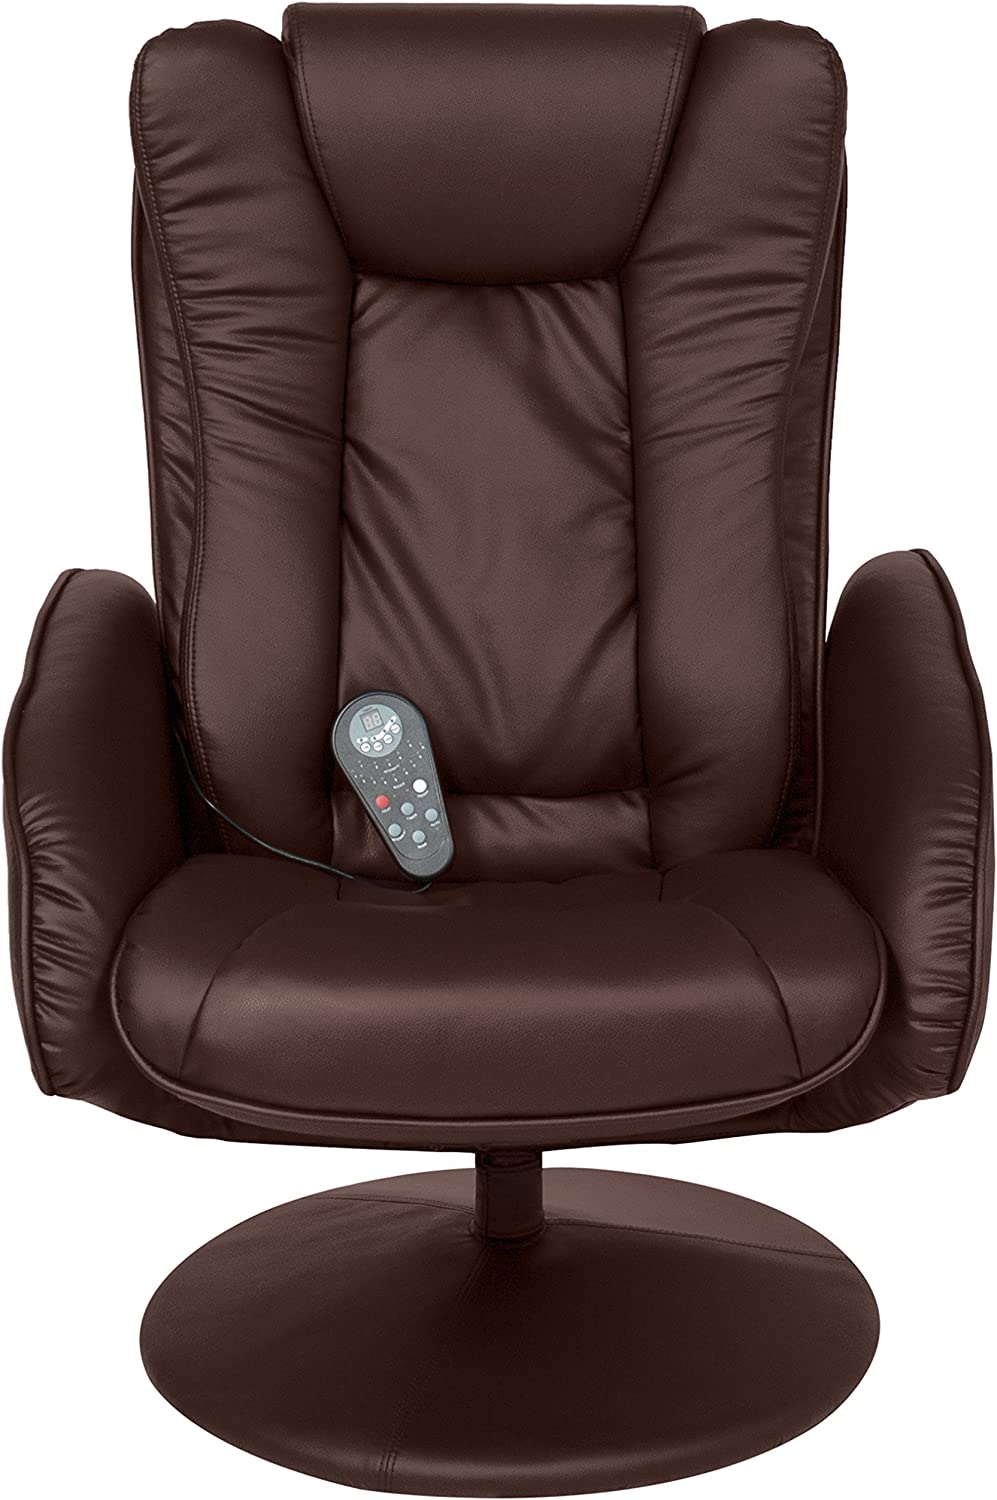 Best Choice Products Recliner Massage Chair with otoman